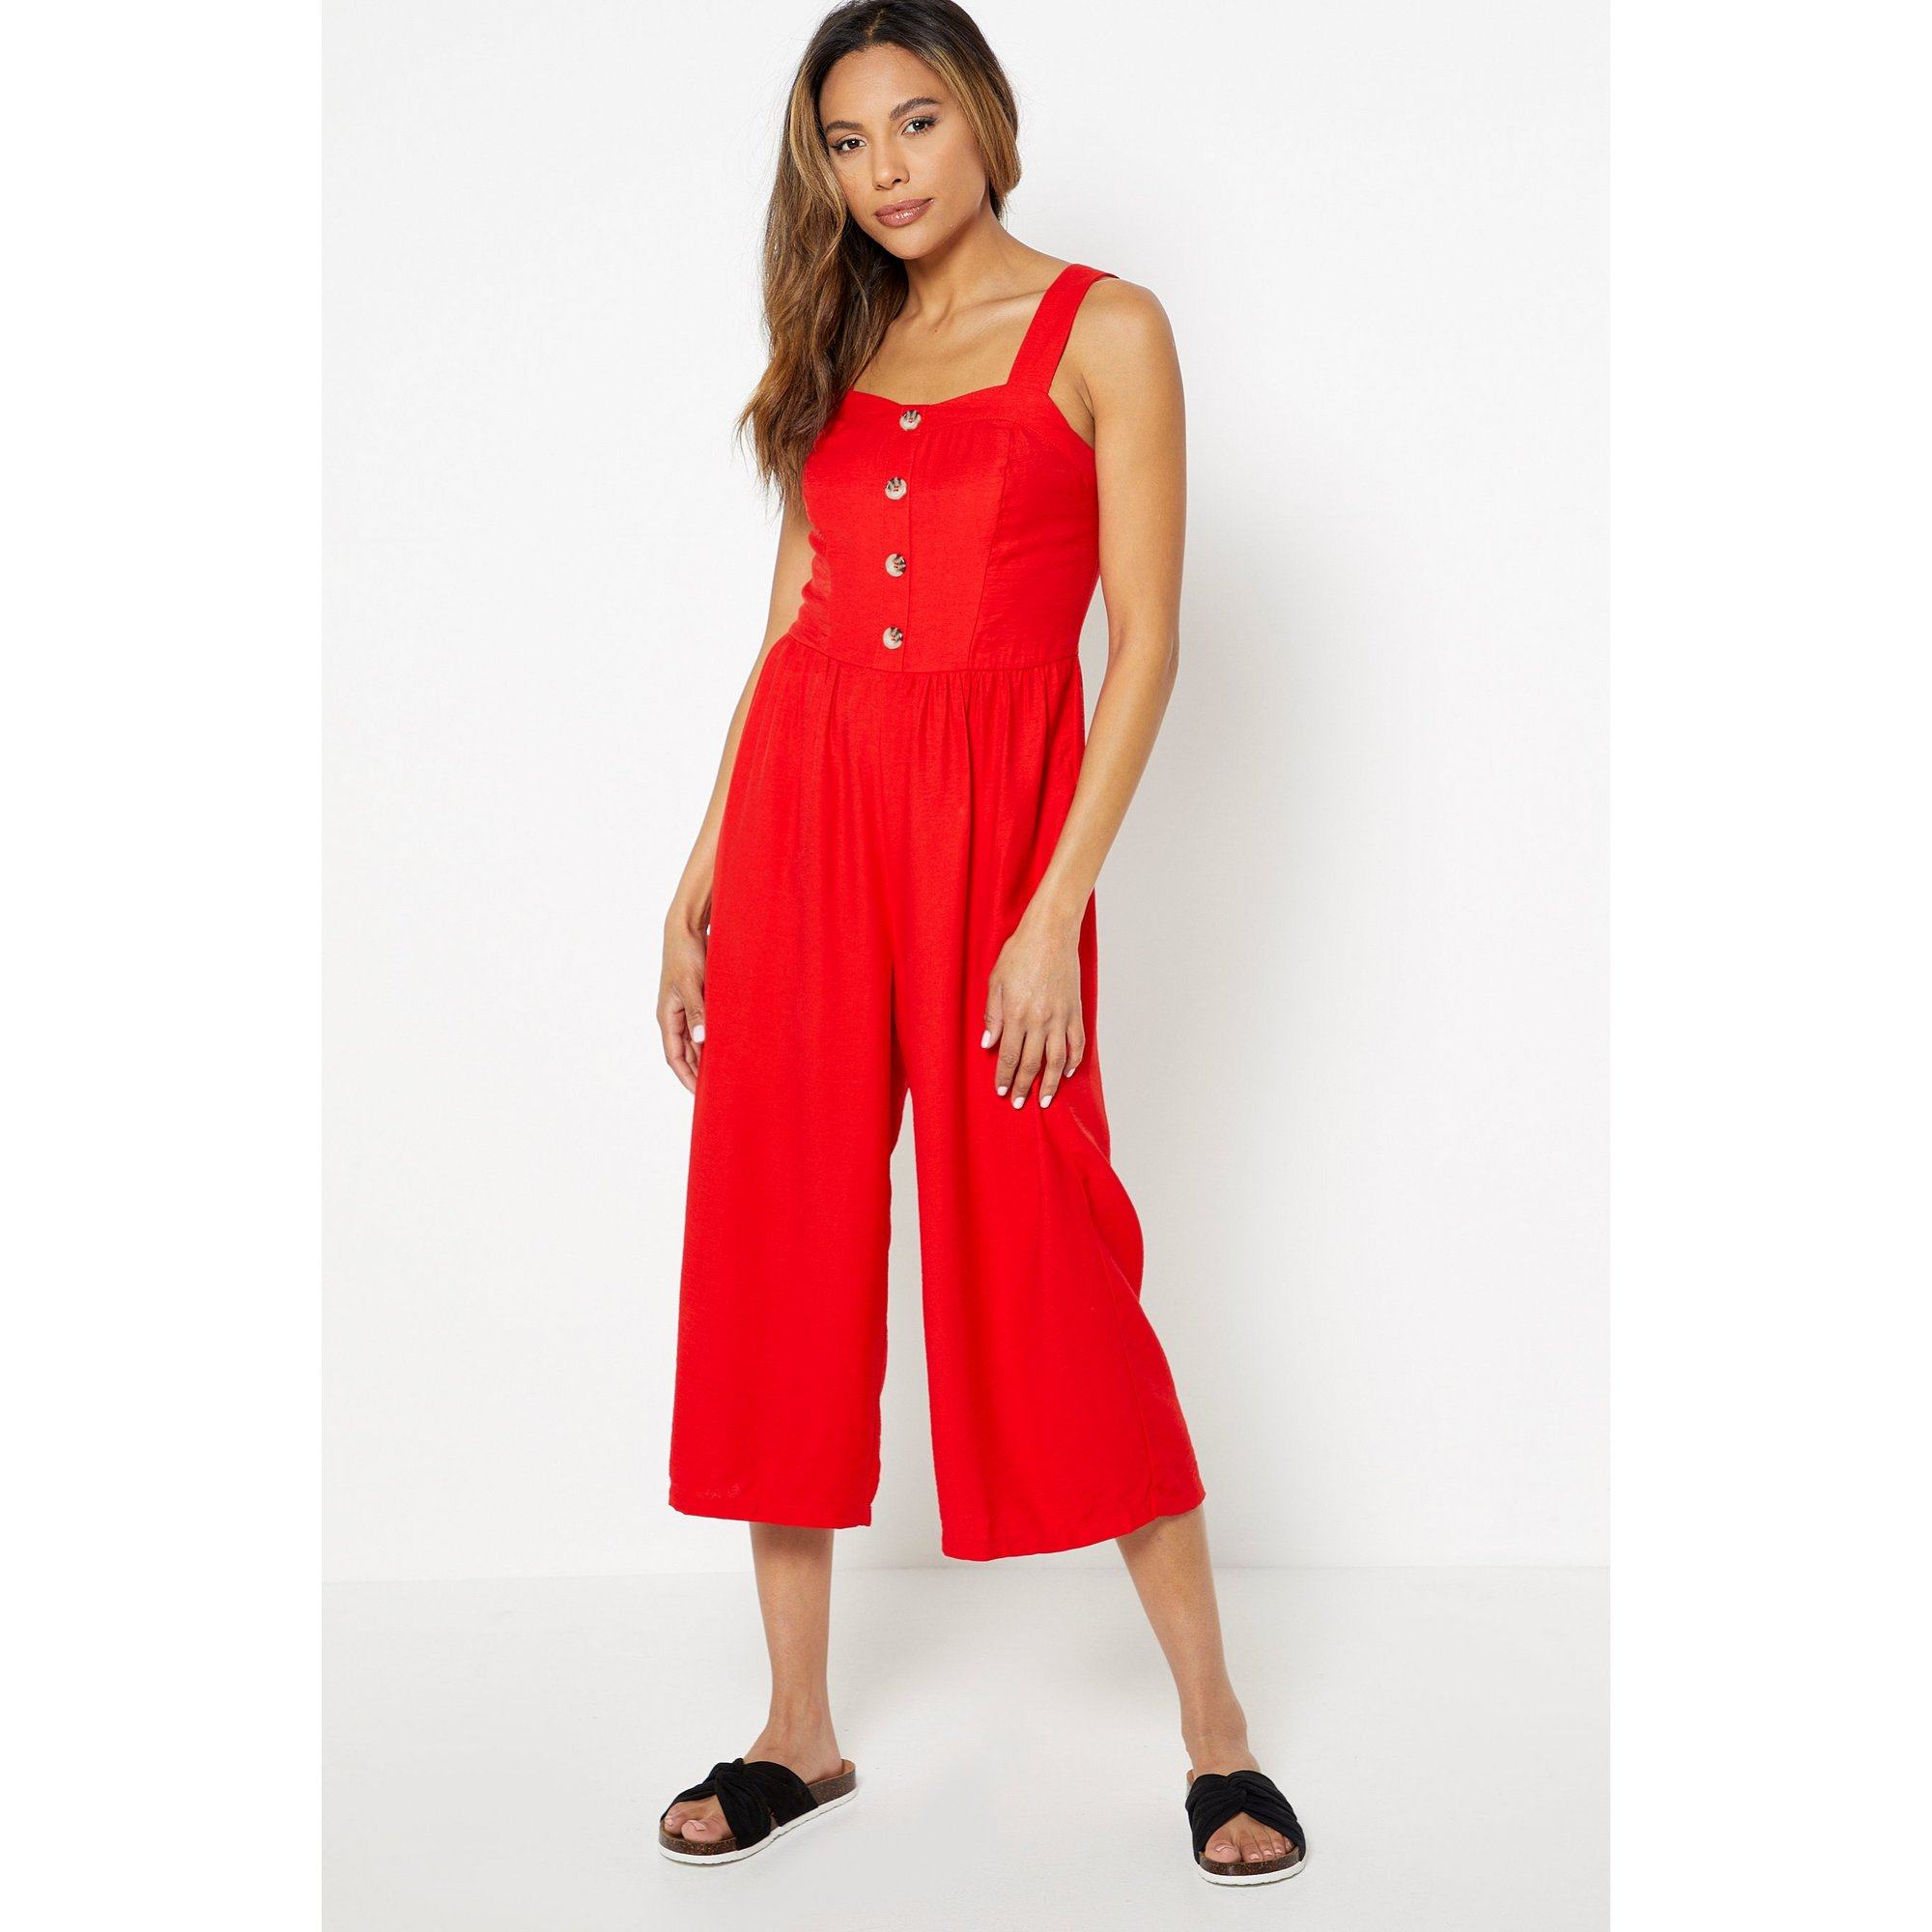 Image of Button Cropped Textured Red Jumpsuit